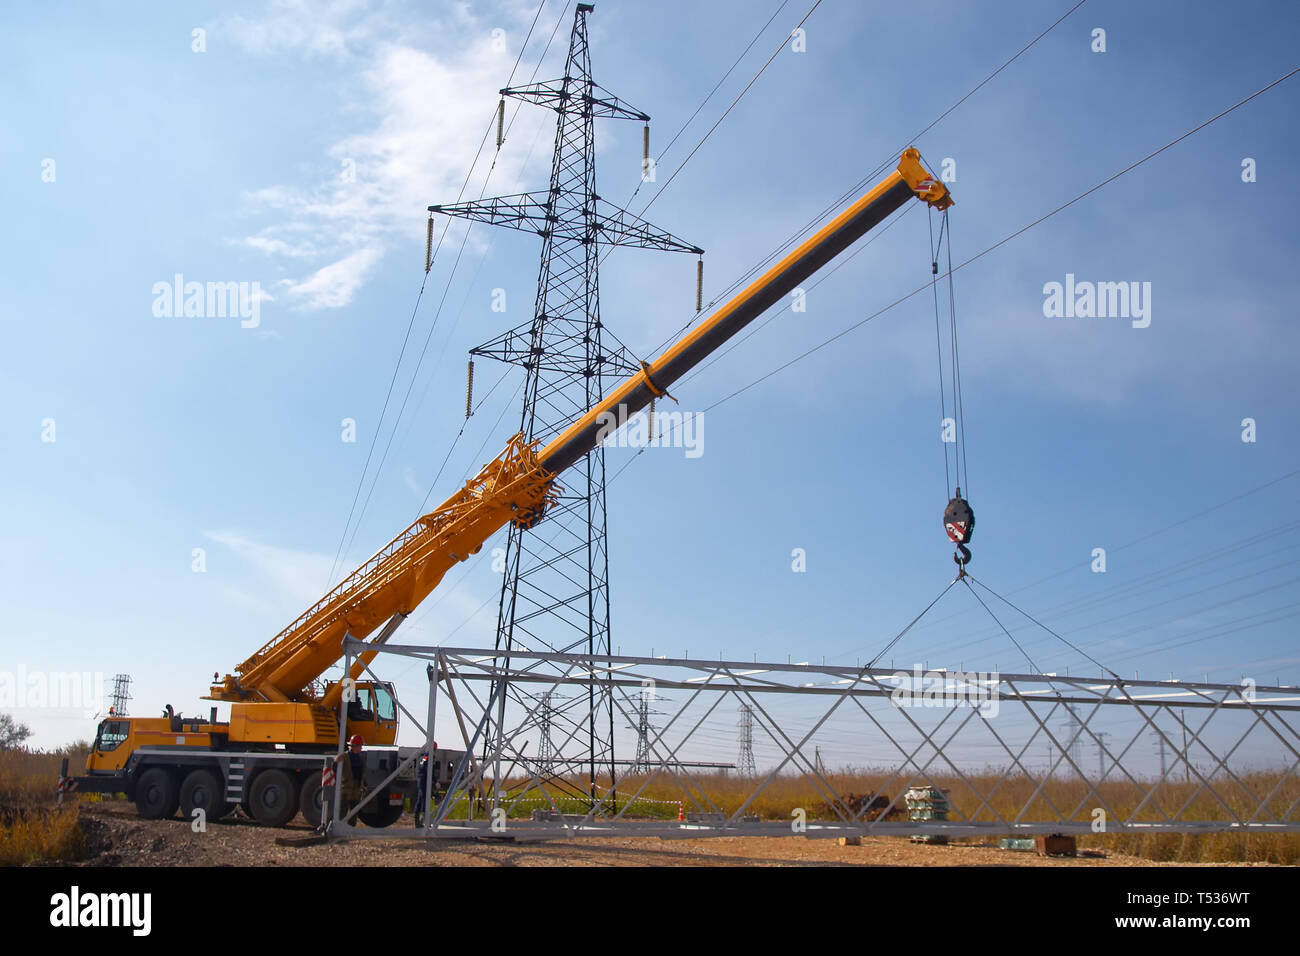 A crane installs a high voltage power line in an industrial